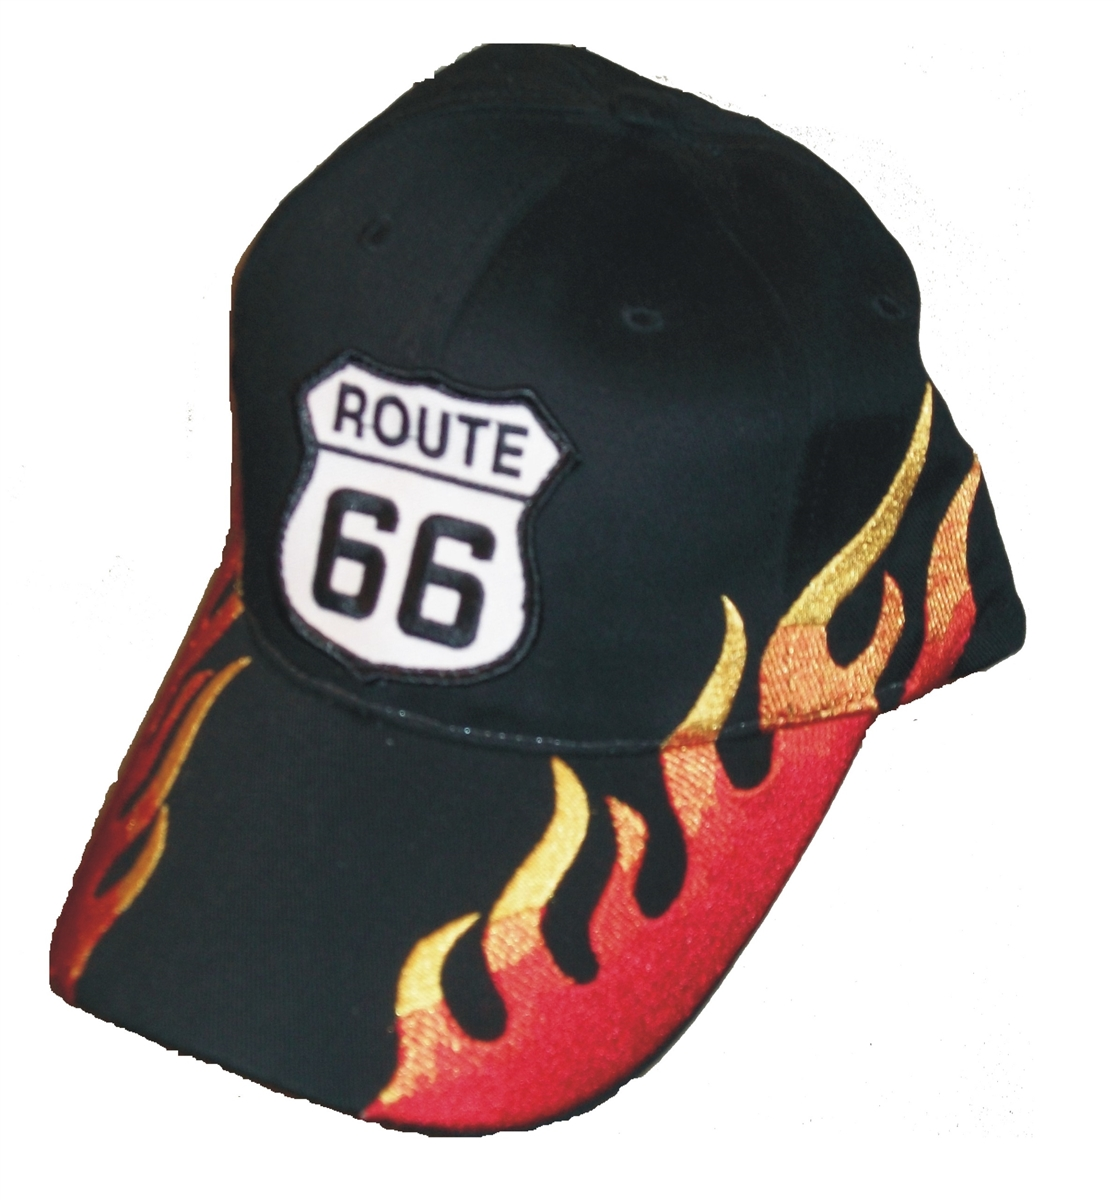 1bbeb676 #687639/11501 - ROUTE 66 Flame fire cap